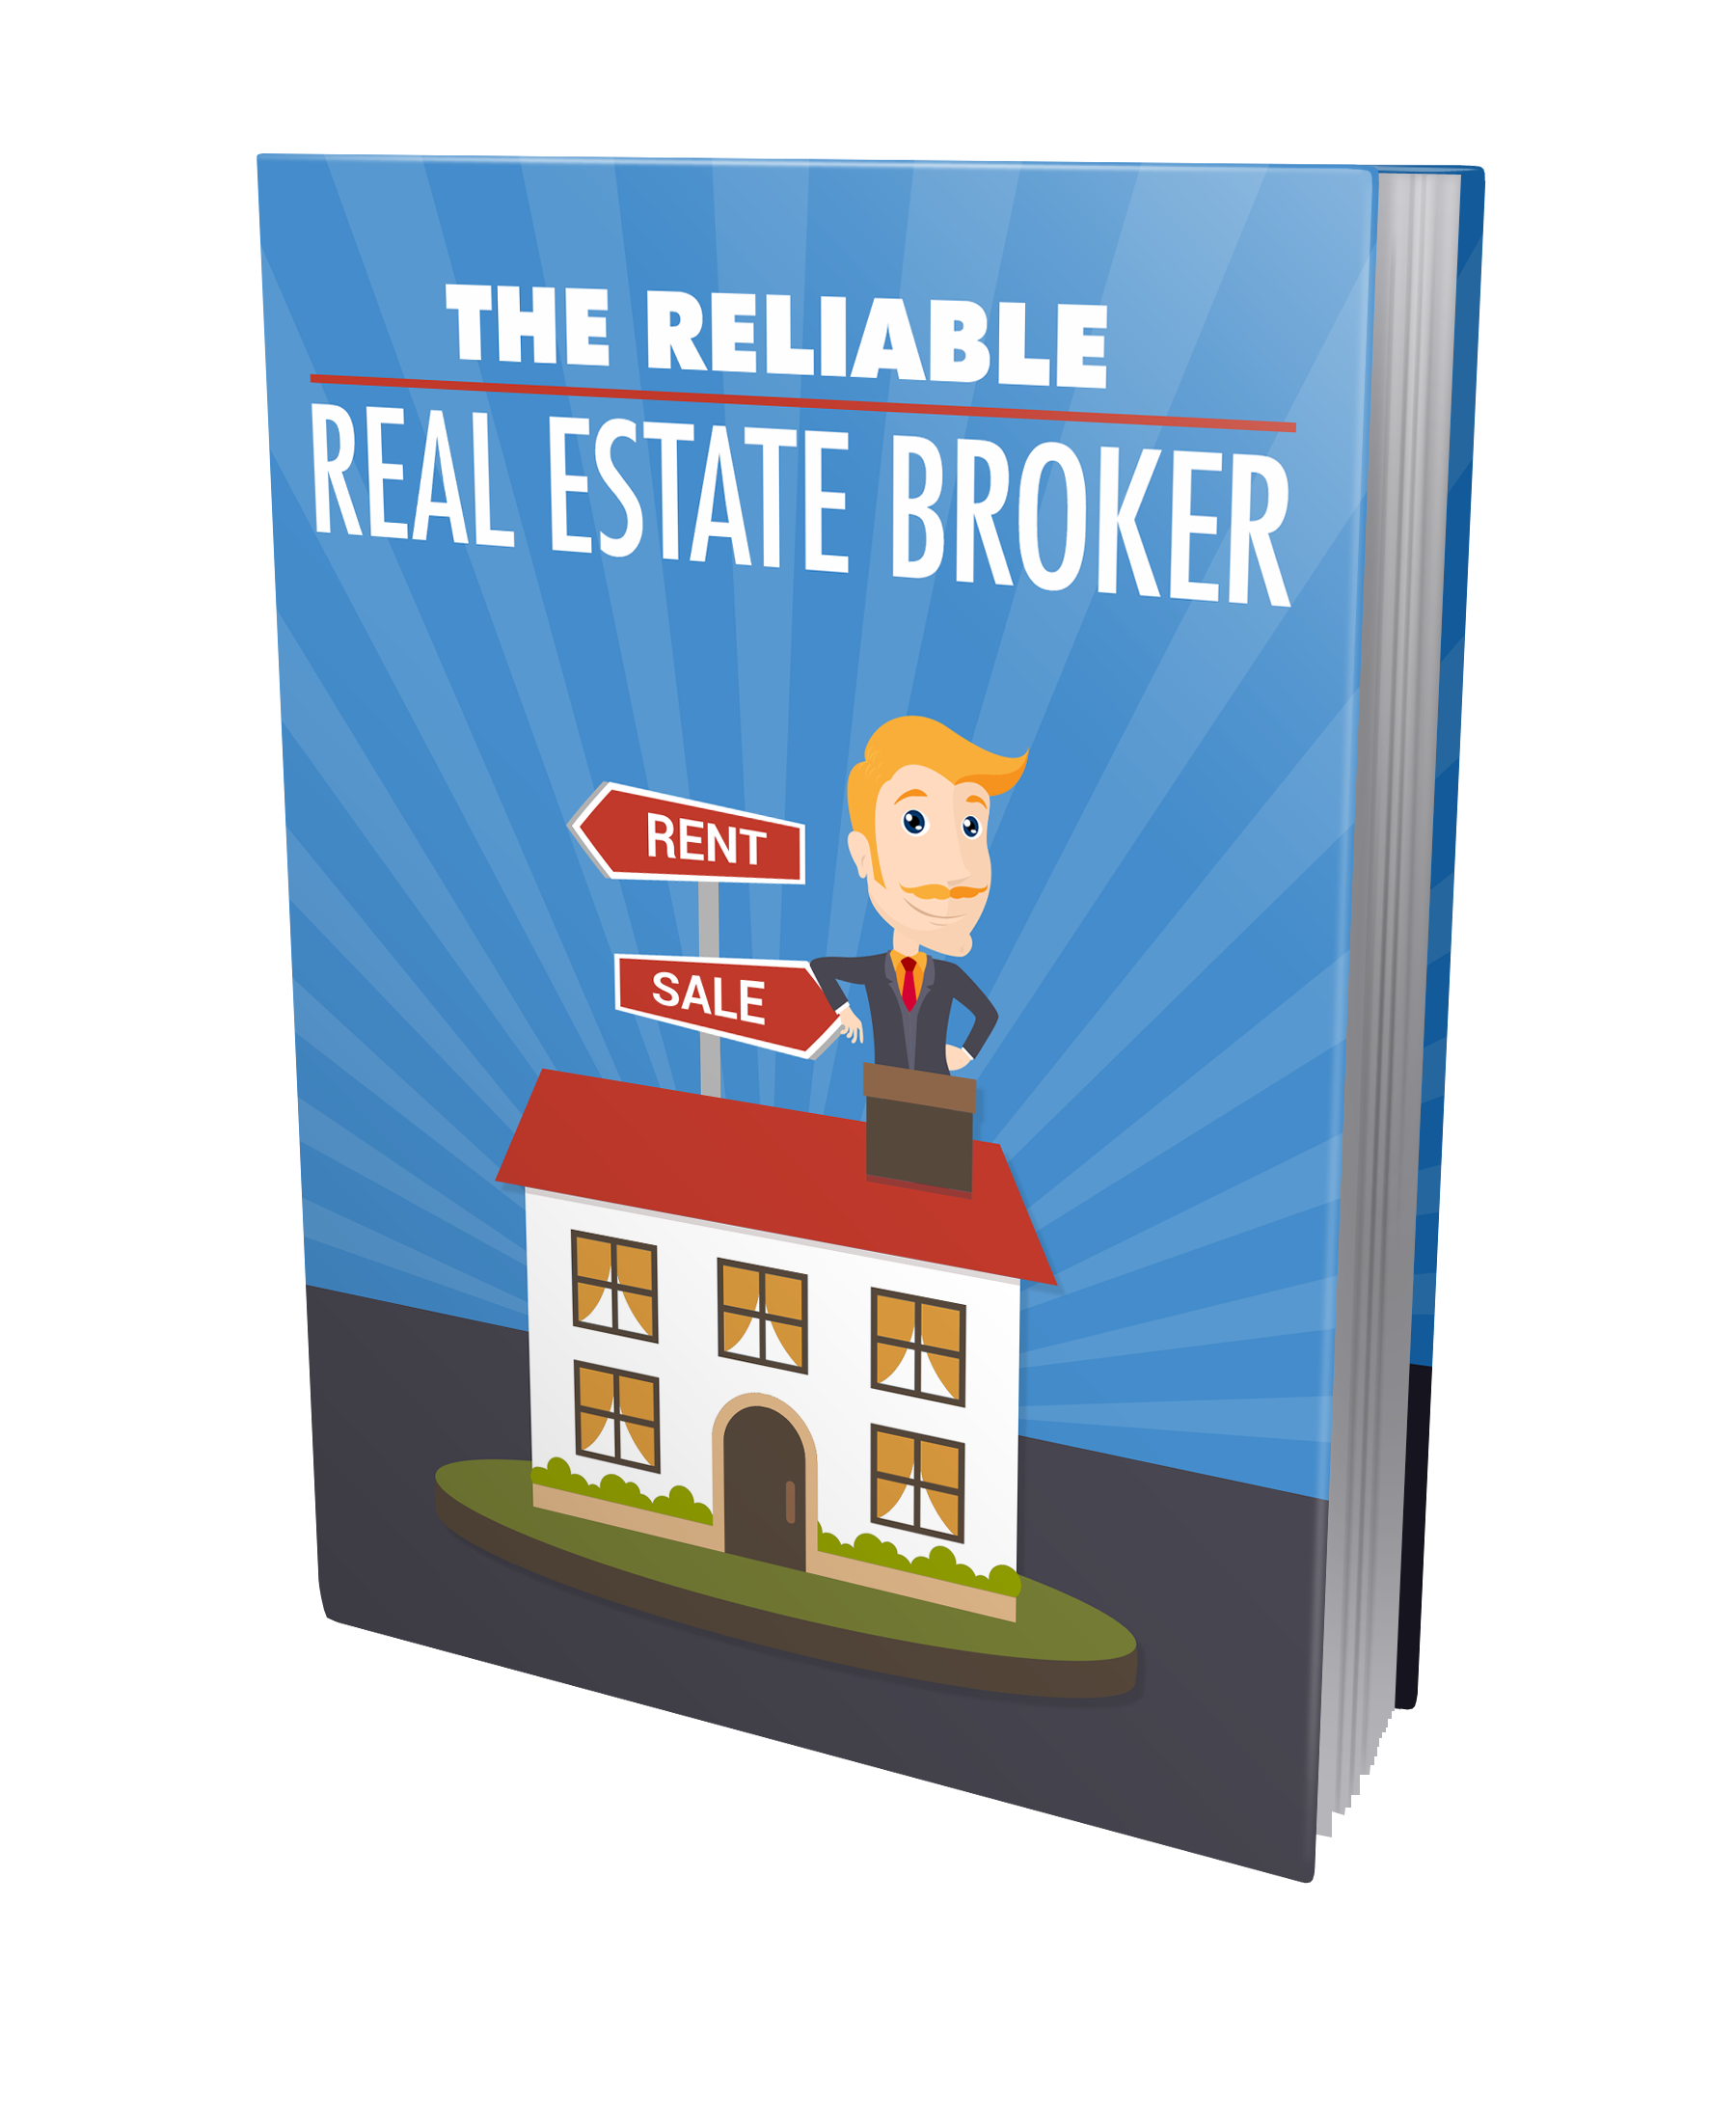 The-Reliable-Real-Estate-Broker-book